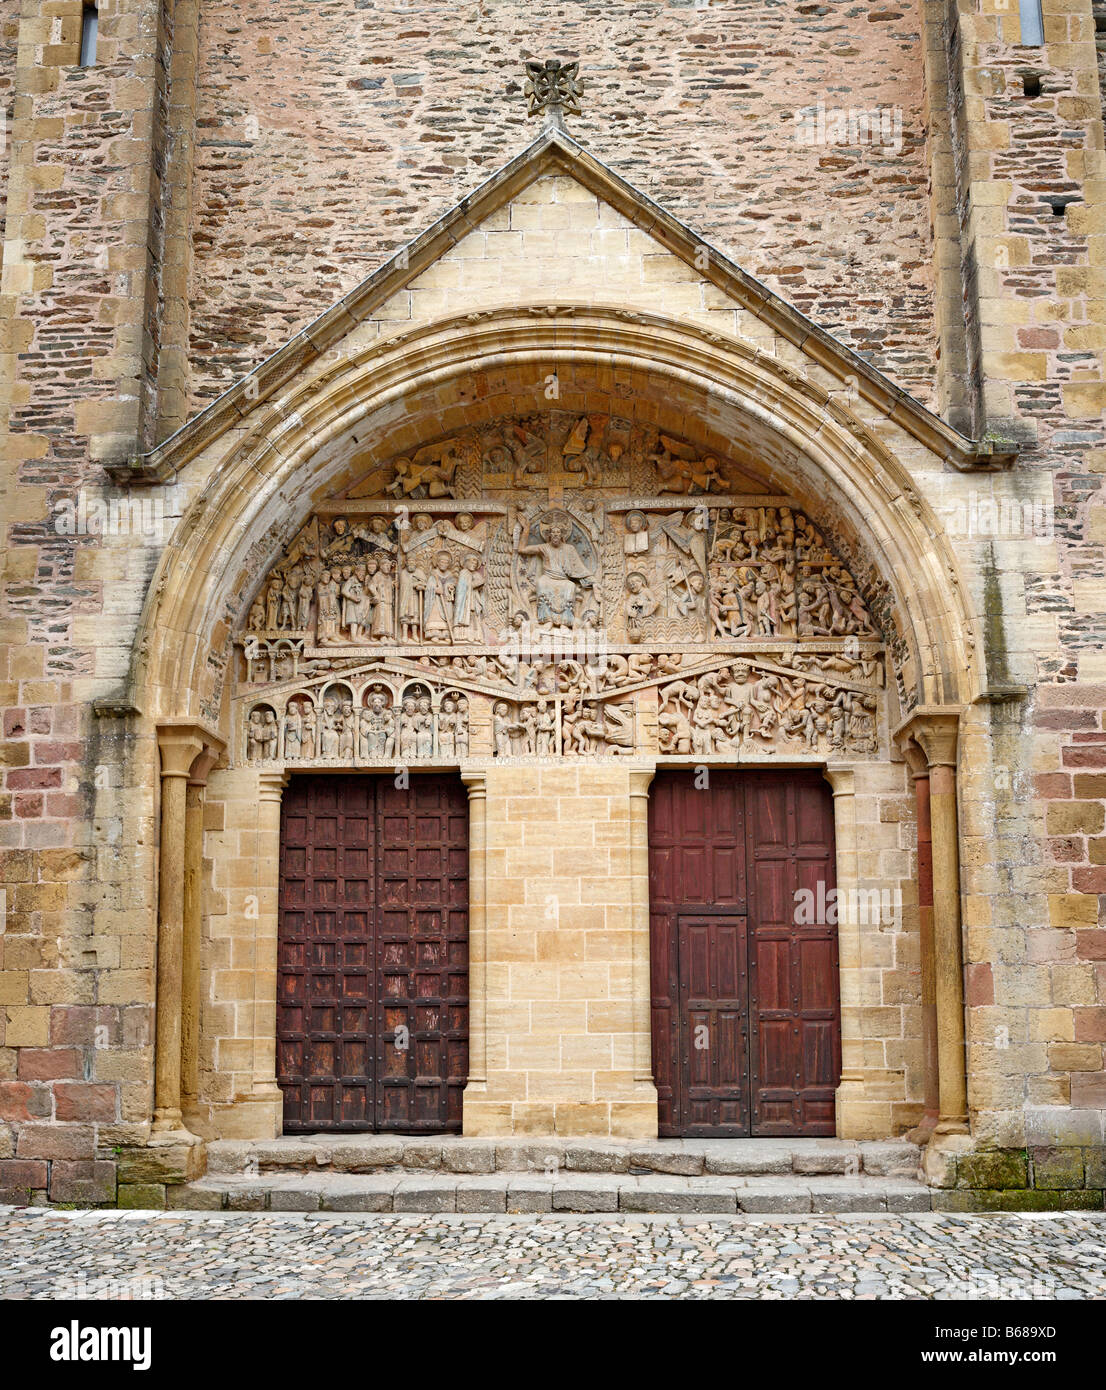 Romanesque sculpture, stone carved bas relief on portal of Sainte Foy abbey church (1124), Conques, France - Stock Image